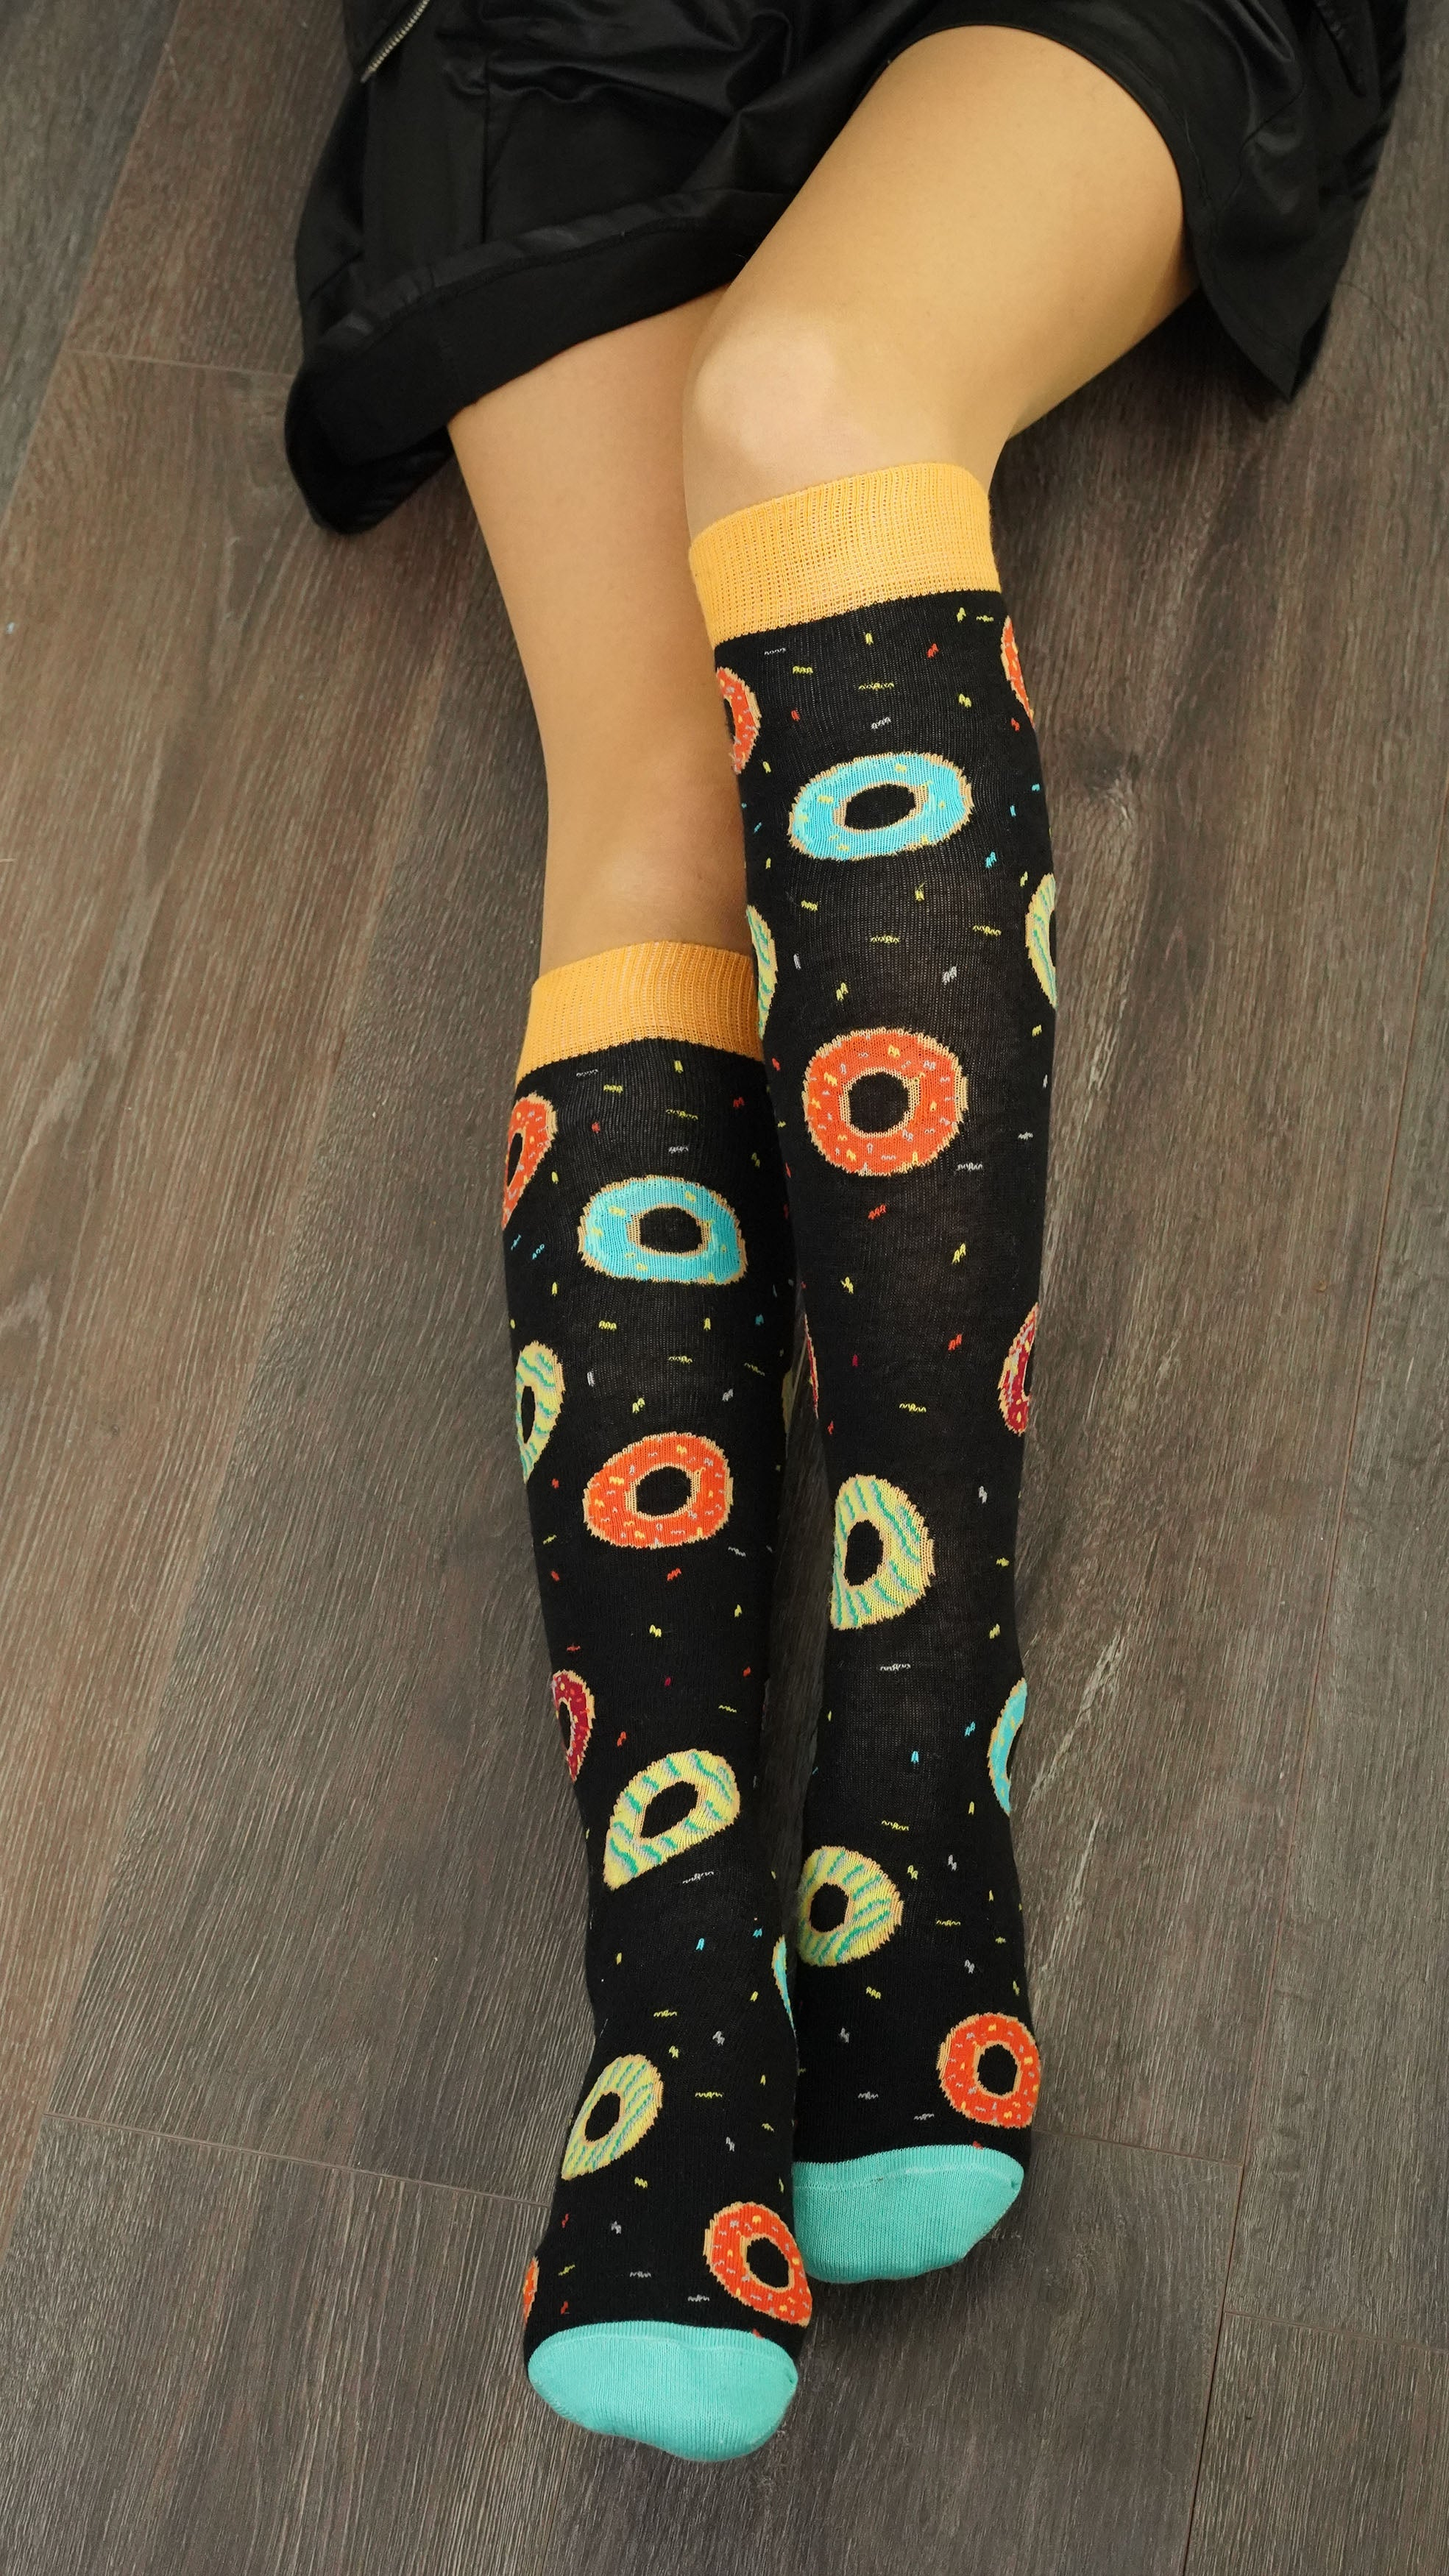 Women's Fast Food Knee High Socks Set